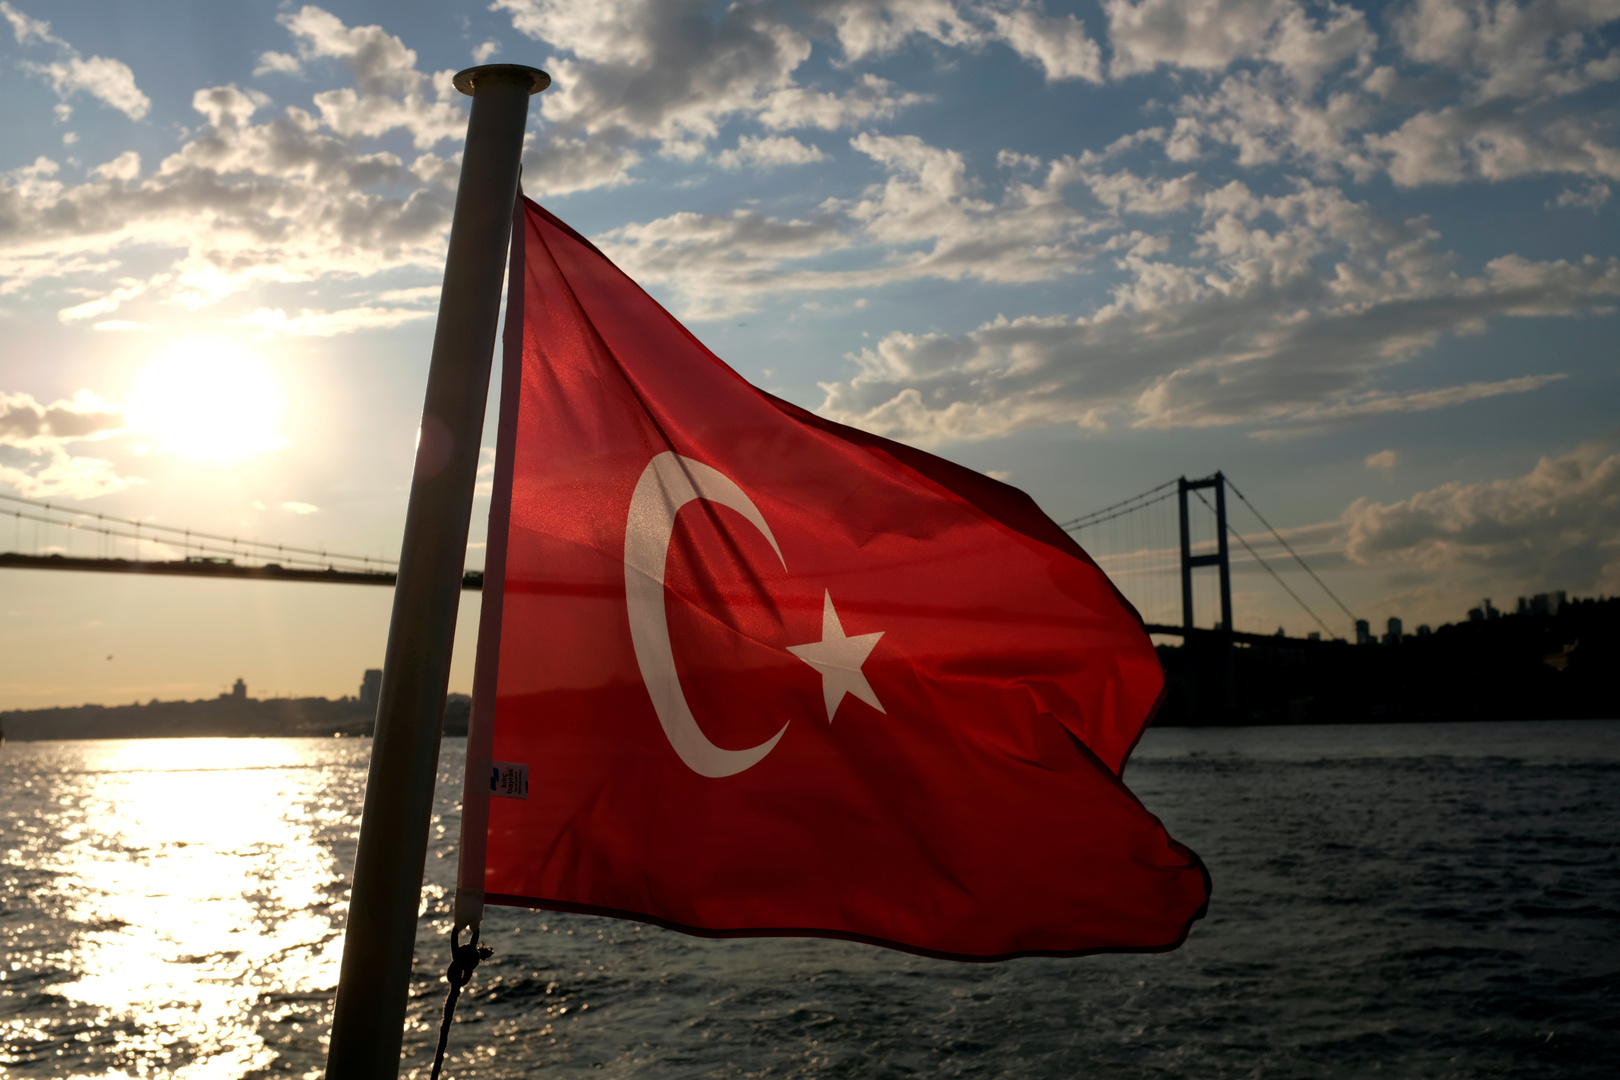 Turkey responds to the results of a forum in which Egypt, Saudi Arabia and Greece participated, under the title